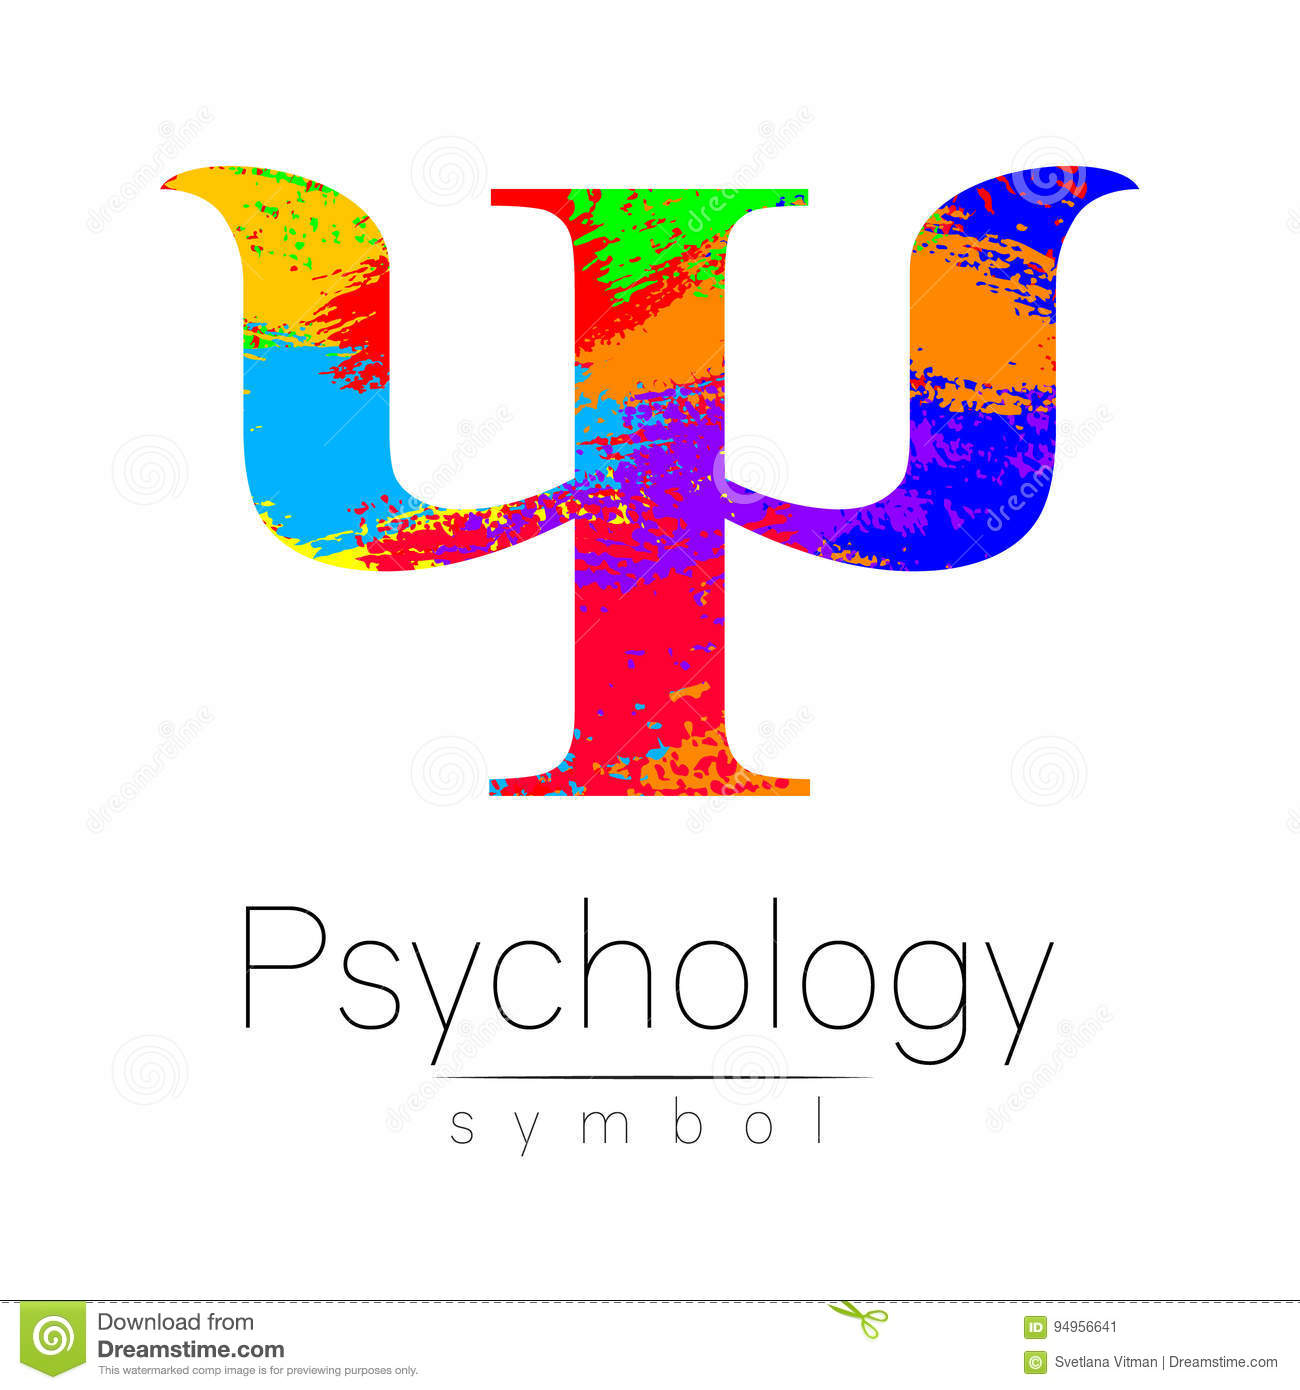 contemporary developments in psychology and counseling essay Earn your bachelor's in psychology & addiction counseling online from aspen university get started learn about human development, families and health.